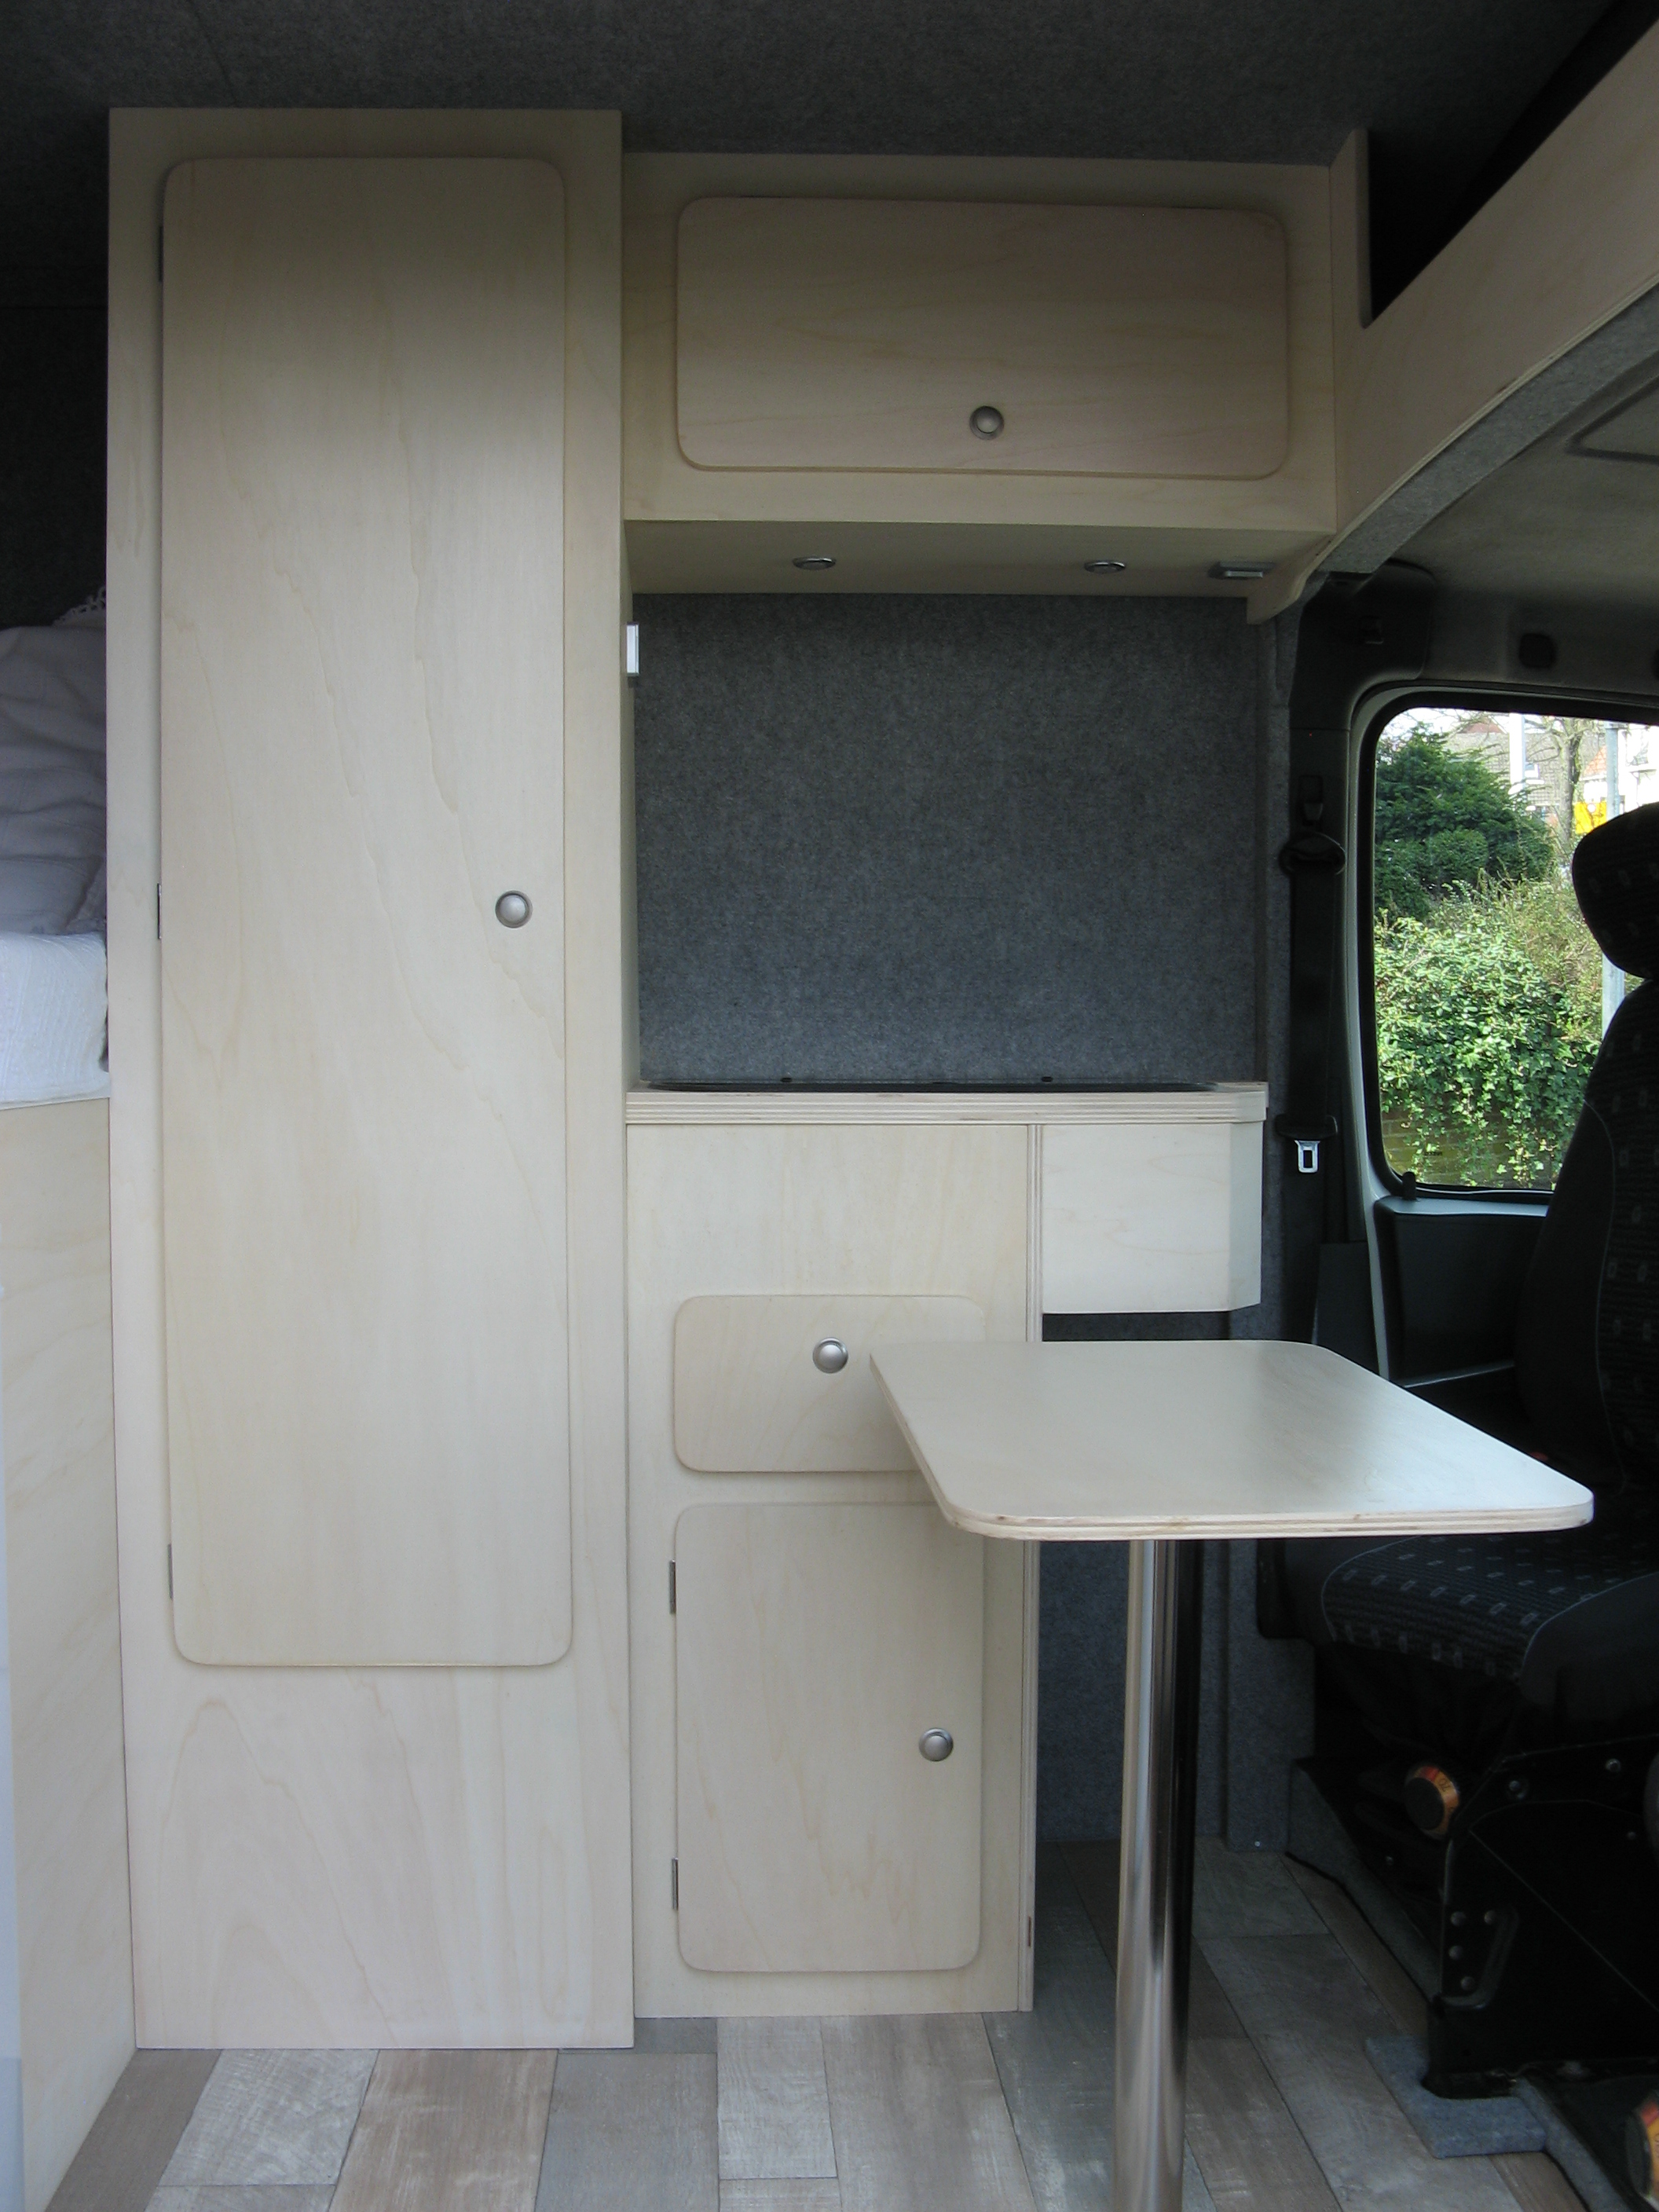 Iveco Daily 079